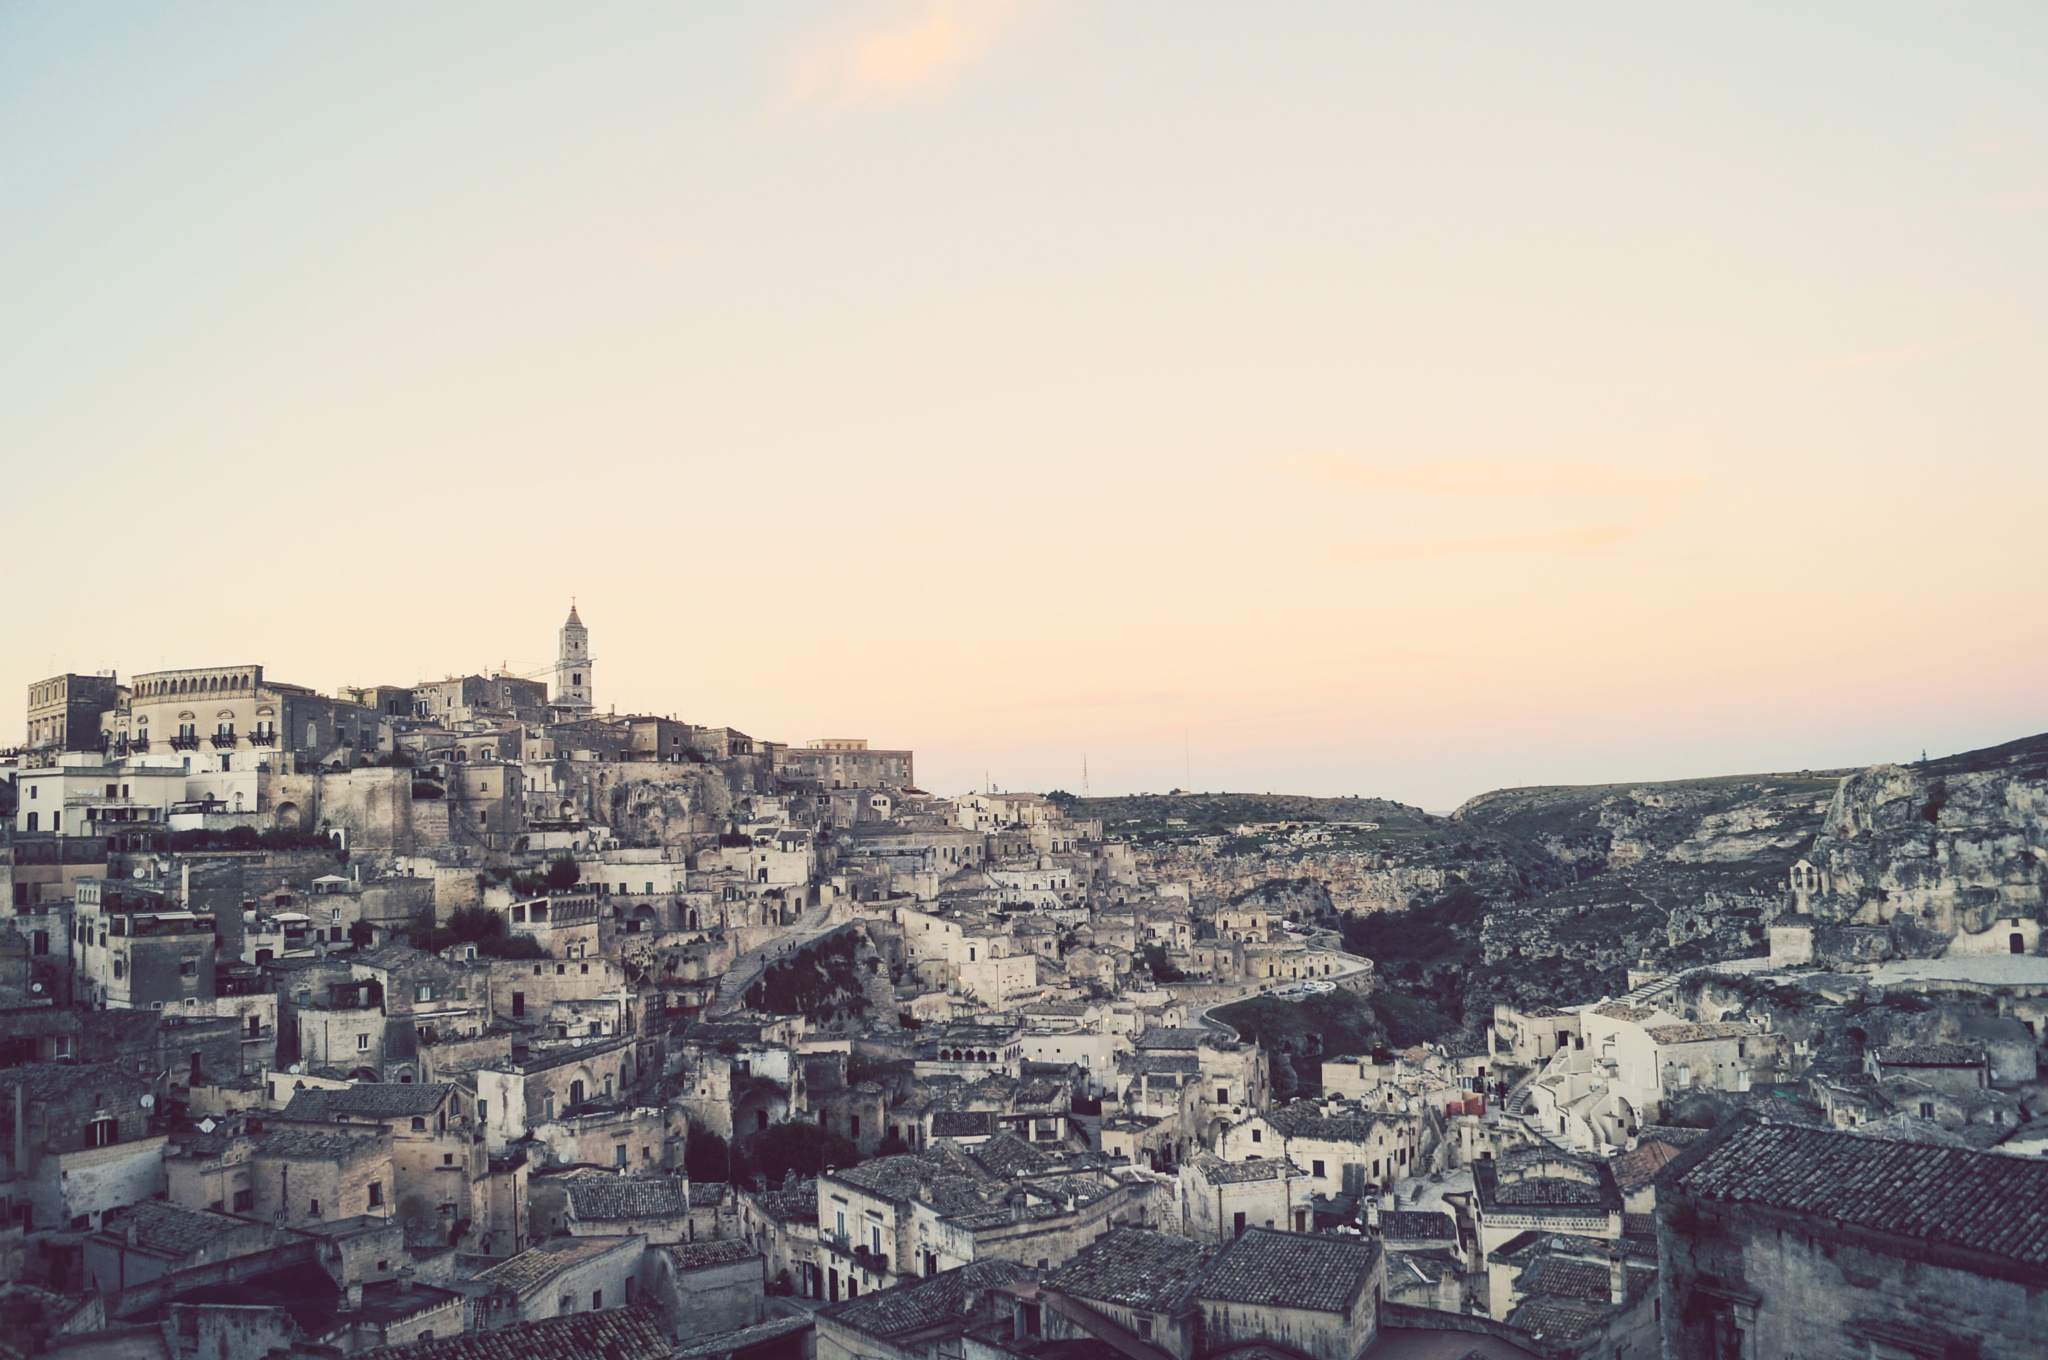 matera by Master of Disaster